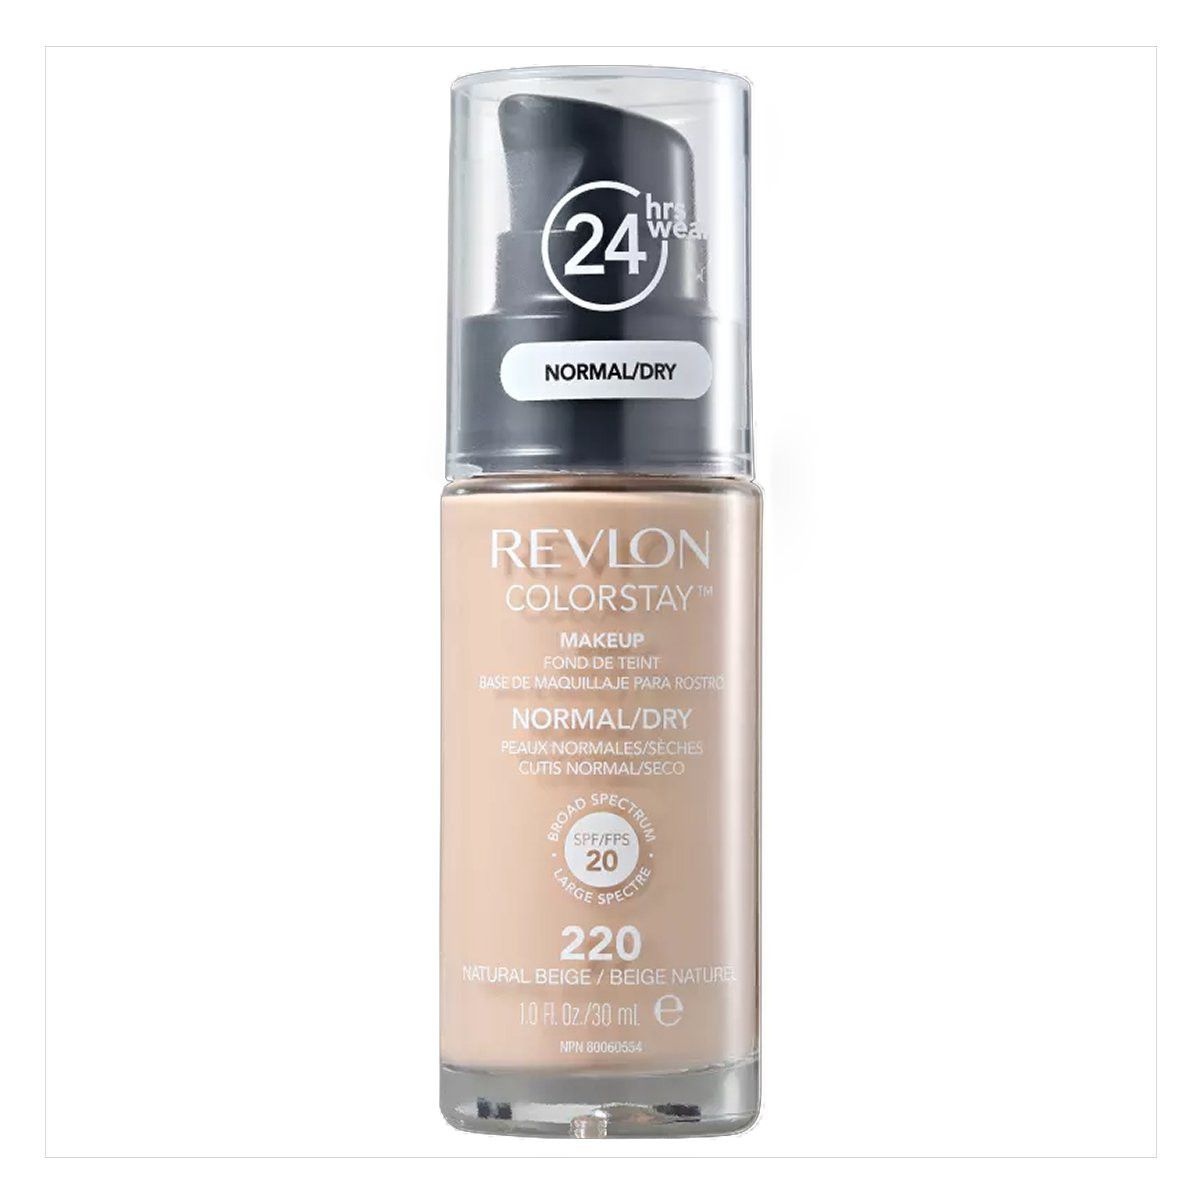 Revlon Colorstay Natural Beige 220 Pele Seca  - Base Liquida 30ml